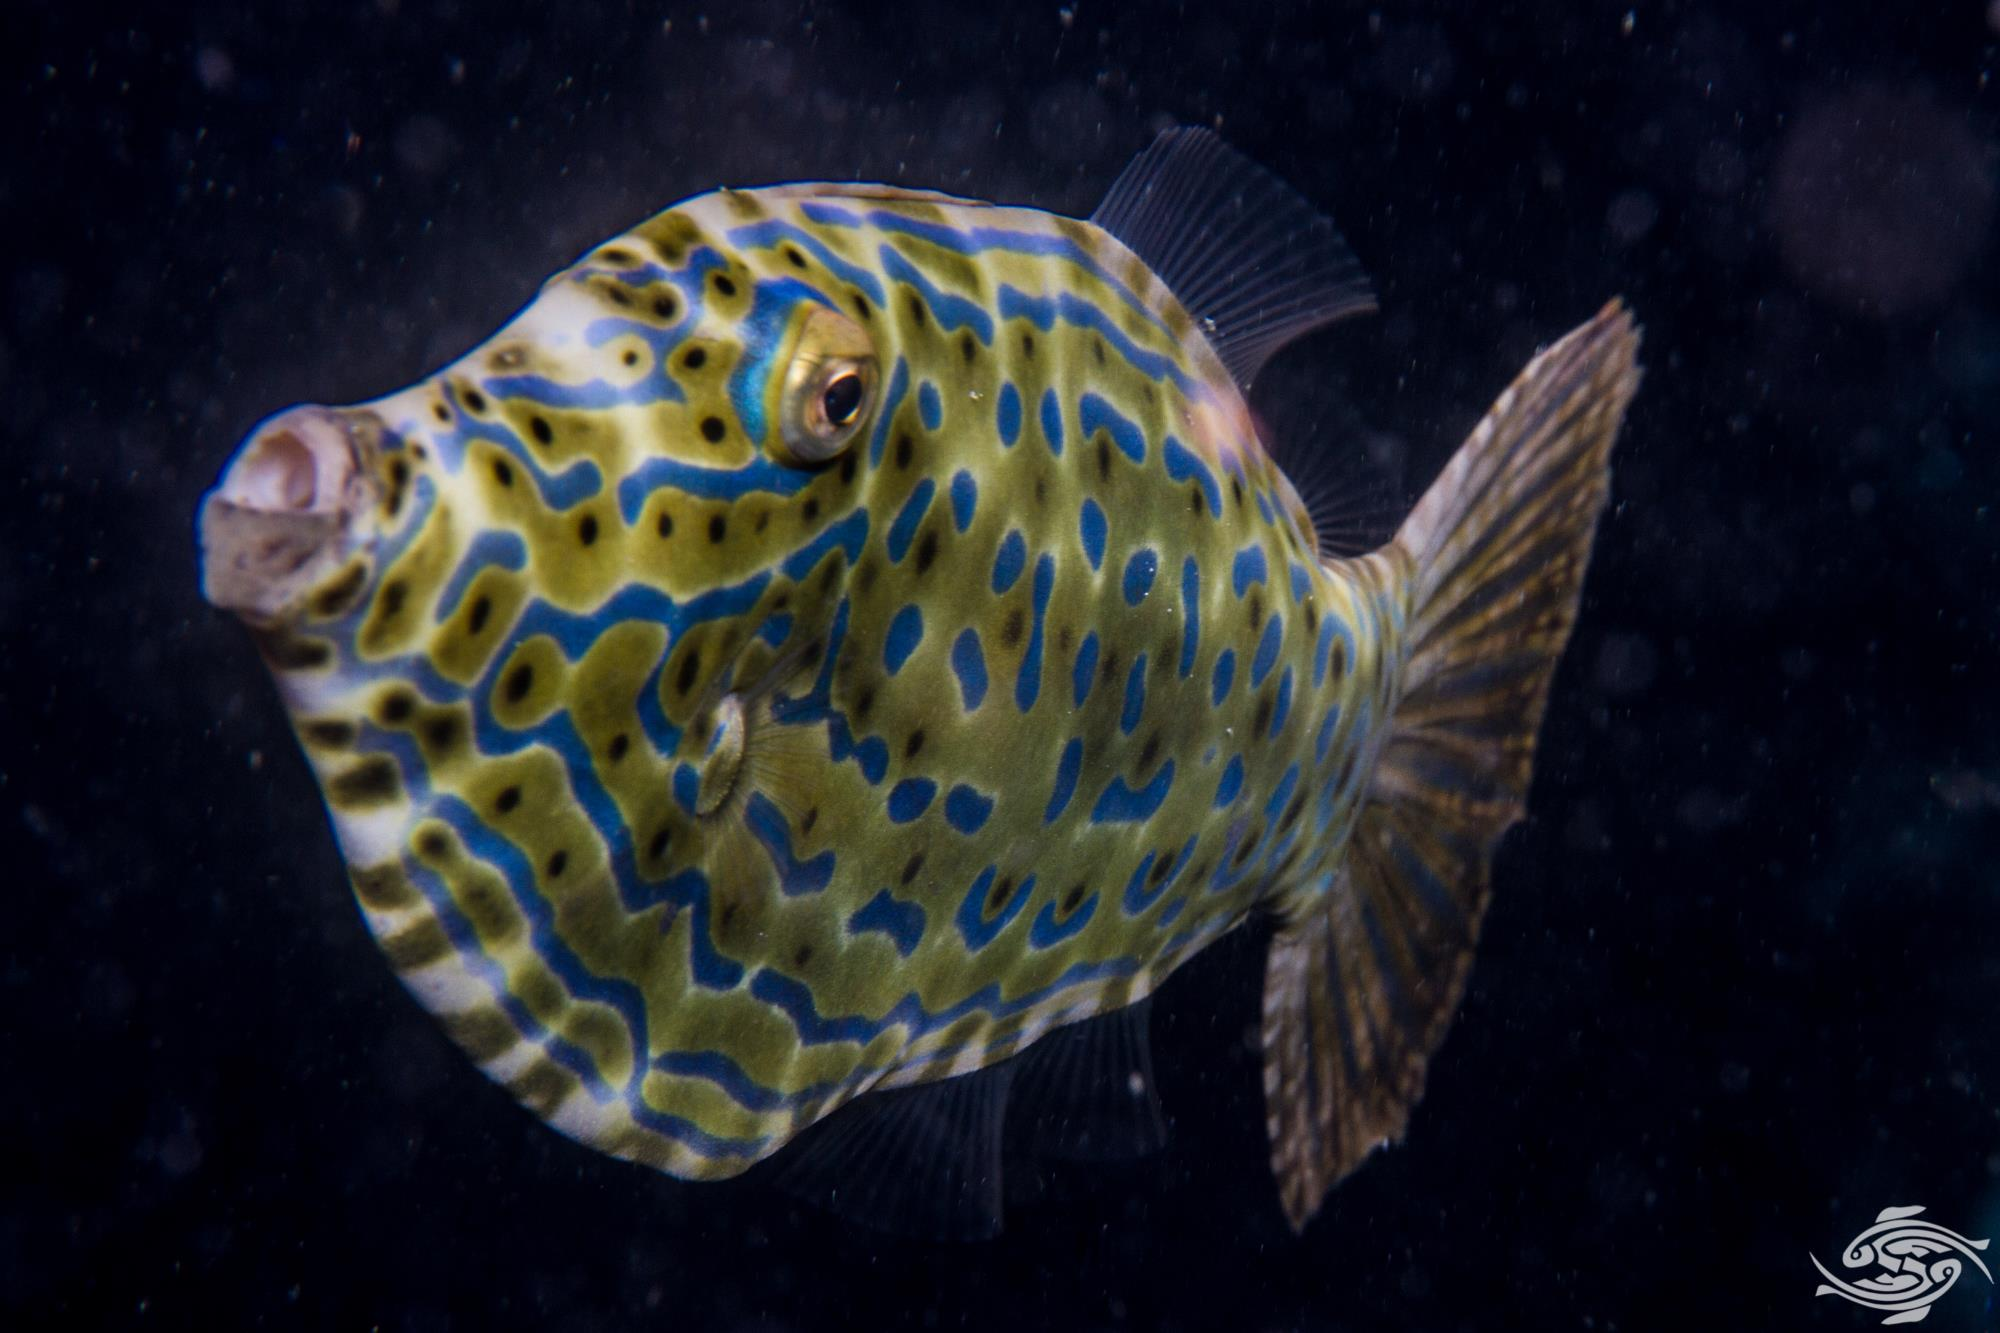 Aluterus scriptus, commonly known as scrawled filefish, broomtail filefish